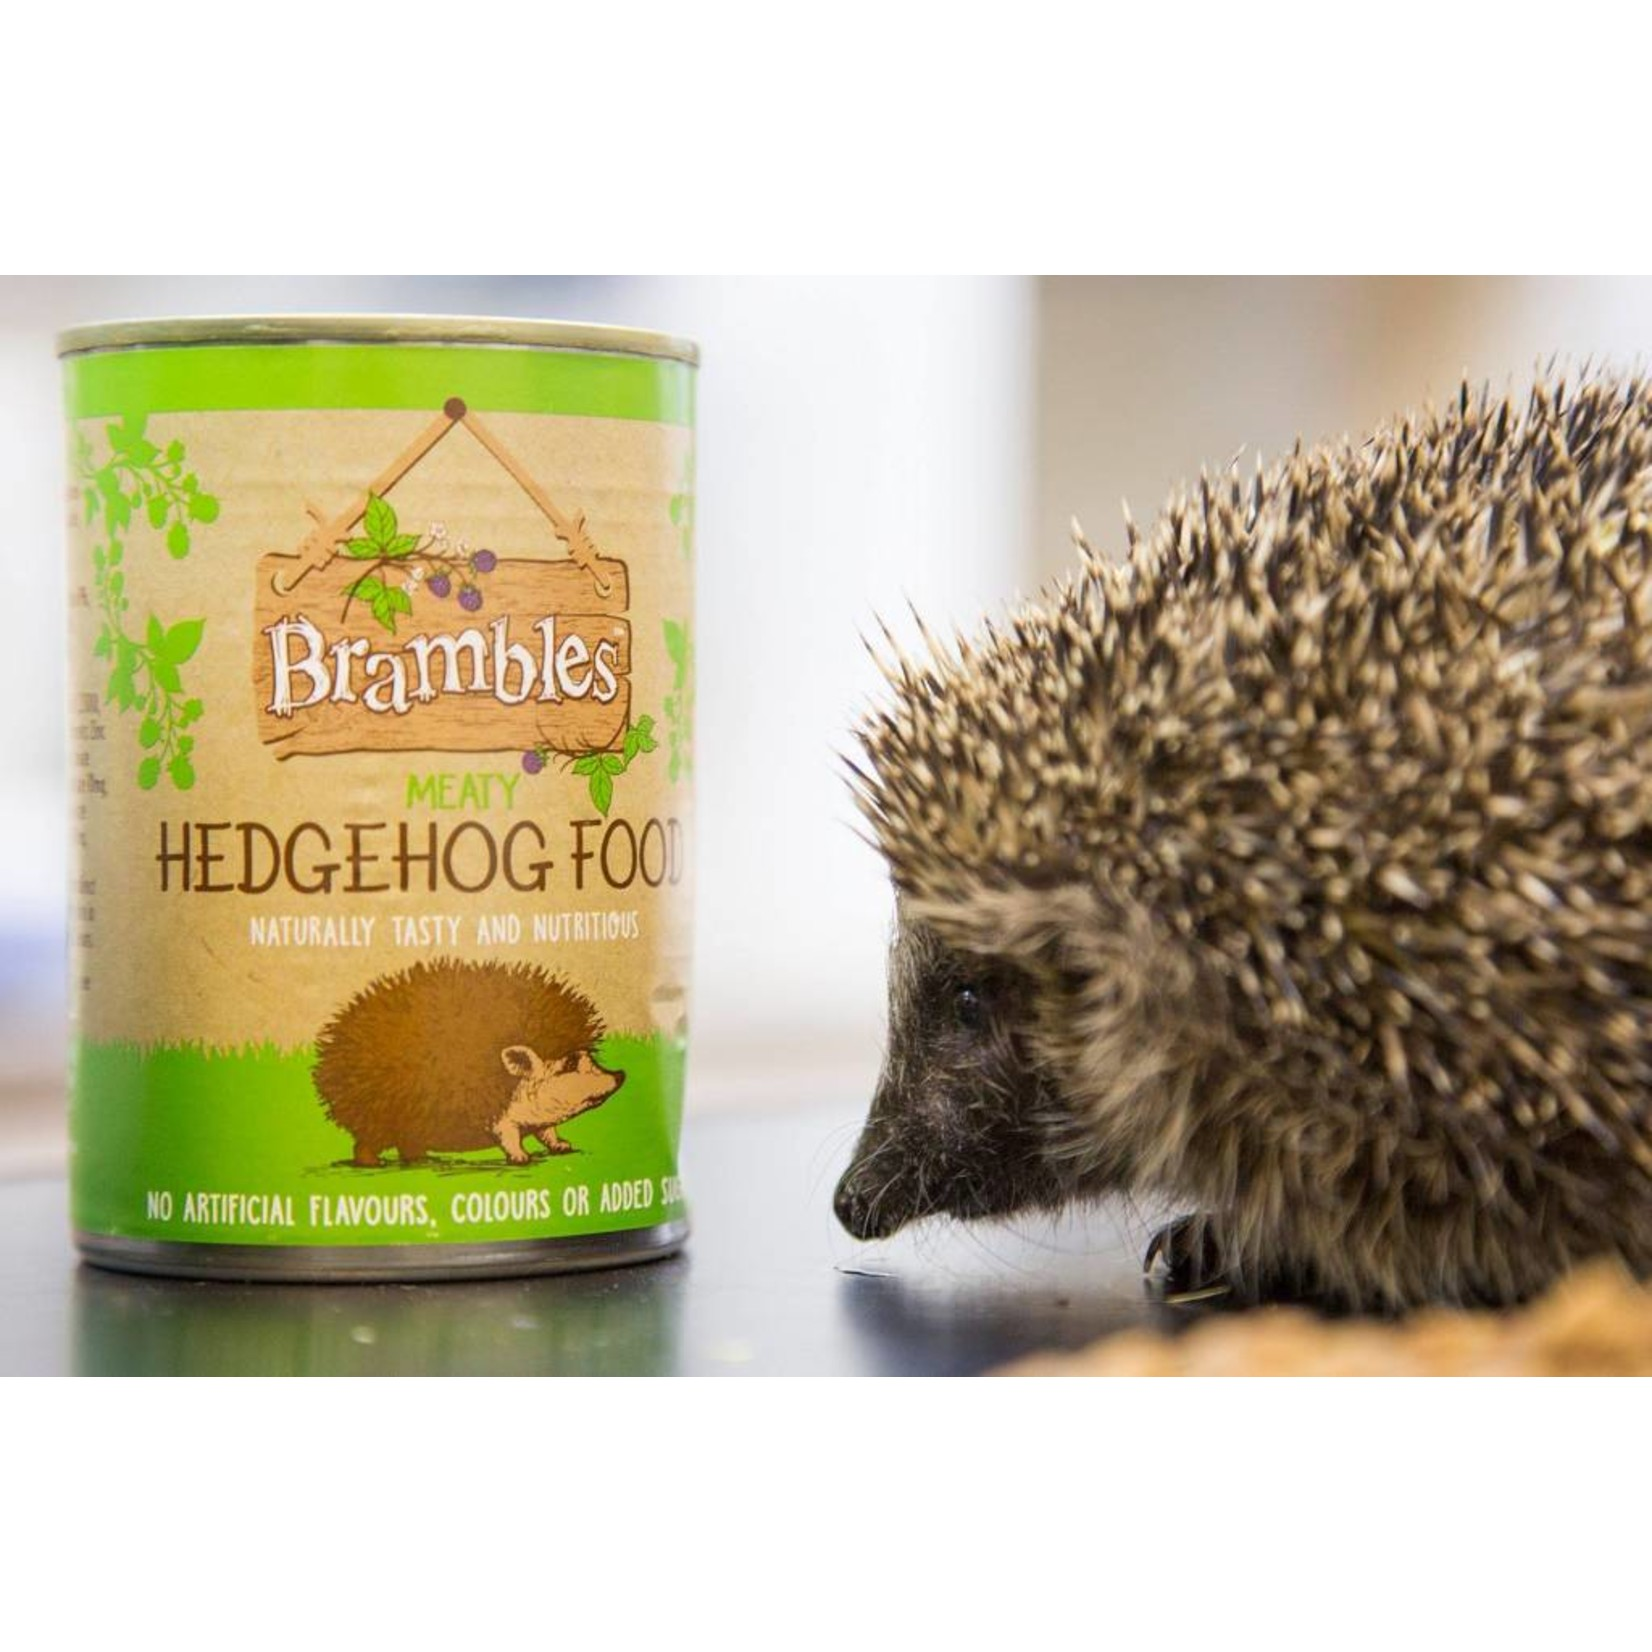 Brambles Meaty Hedgehog Food 400g